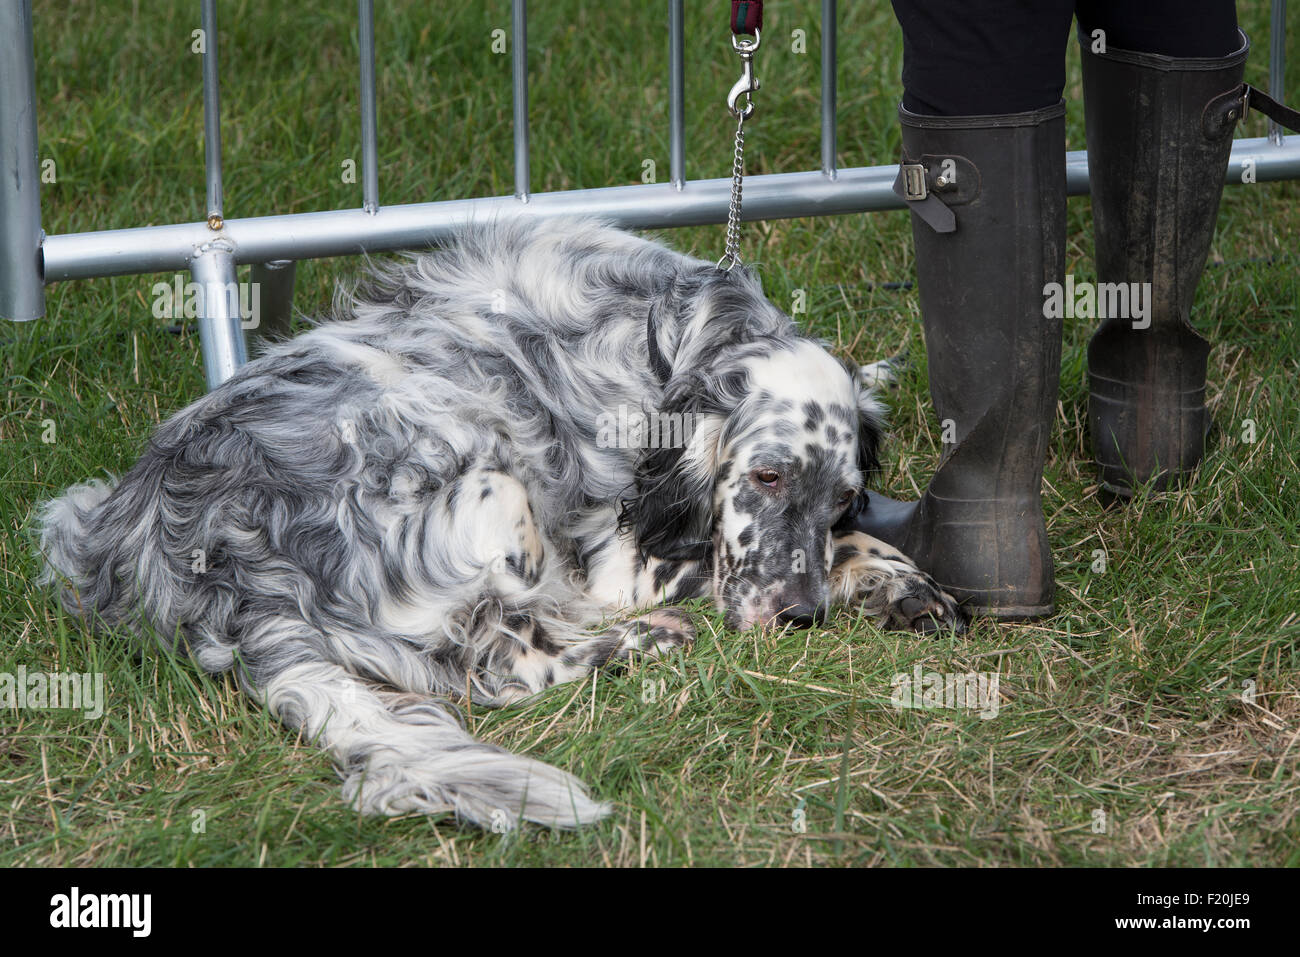 English Setter looking bored at Steam rally and Country fair Stow cum Quy Cambridgeshire England 2015 Stock Photo